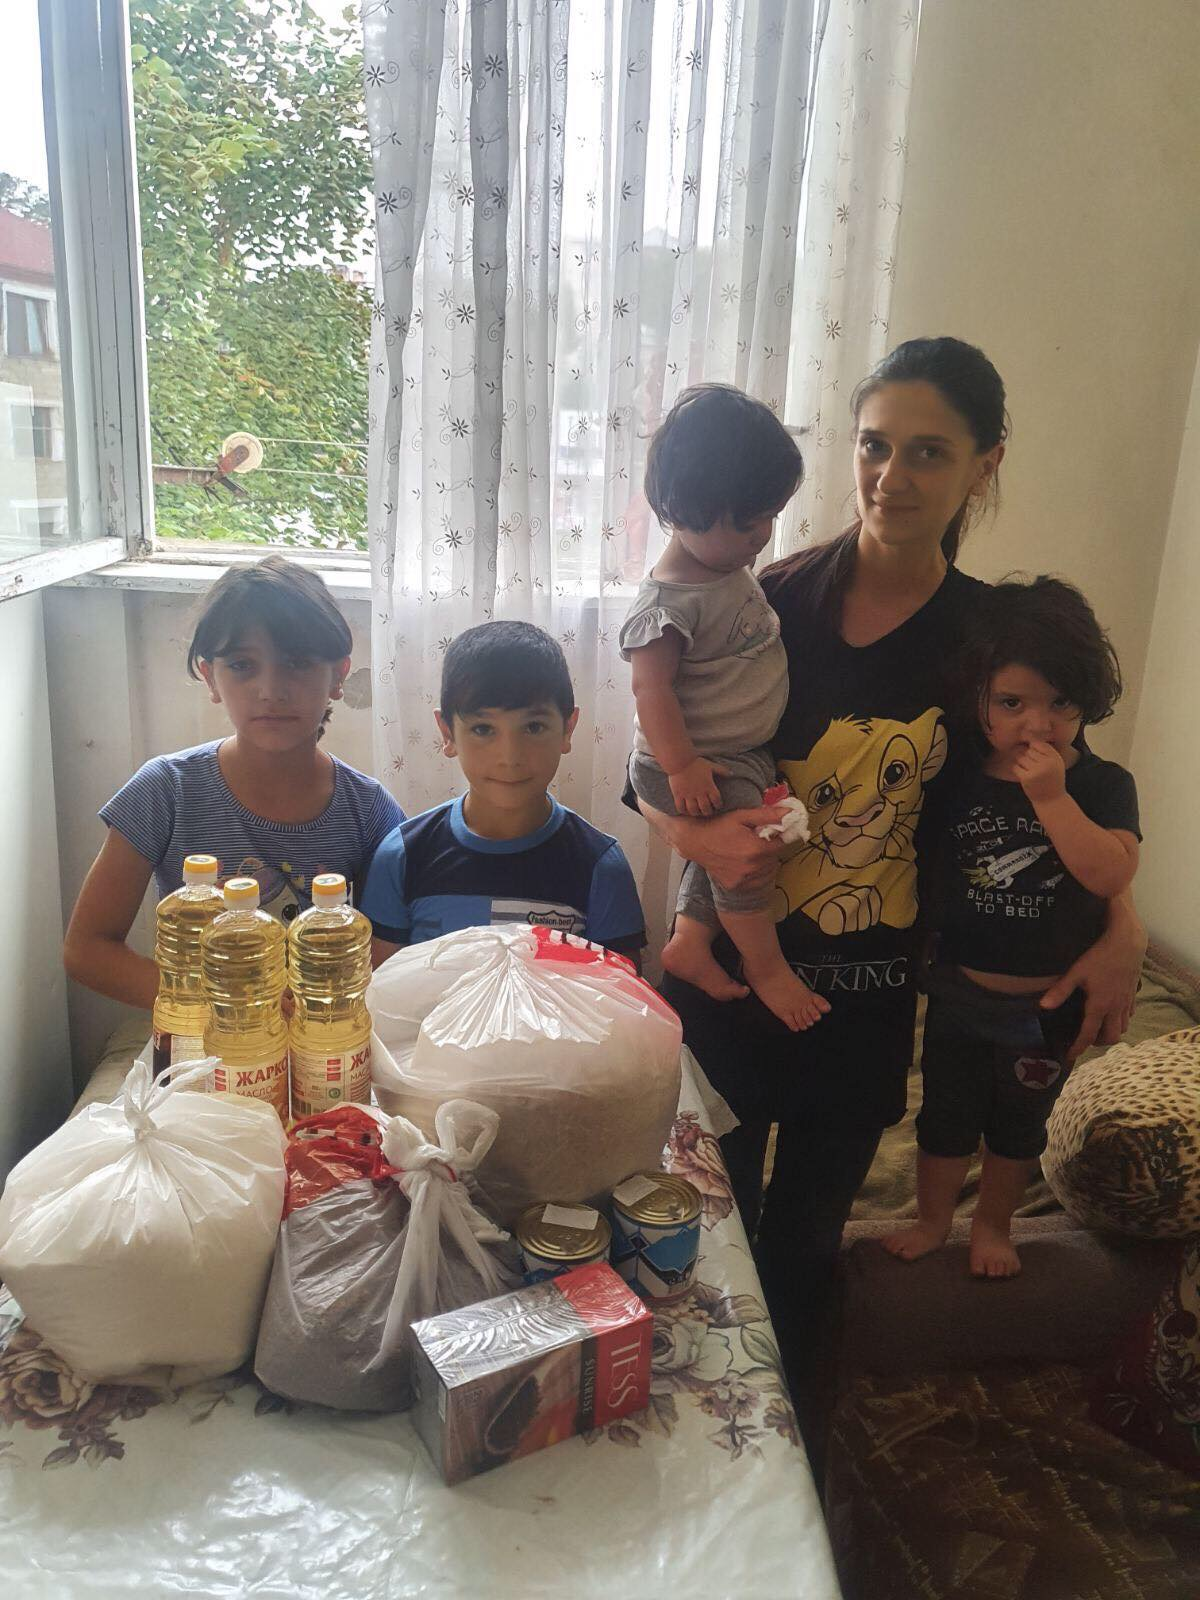 Bringing food packs to a family that moved from Nagorno-Karabakh to Armenia.